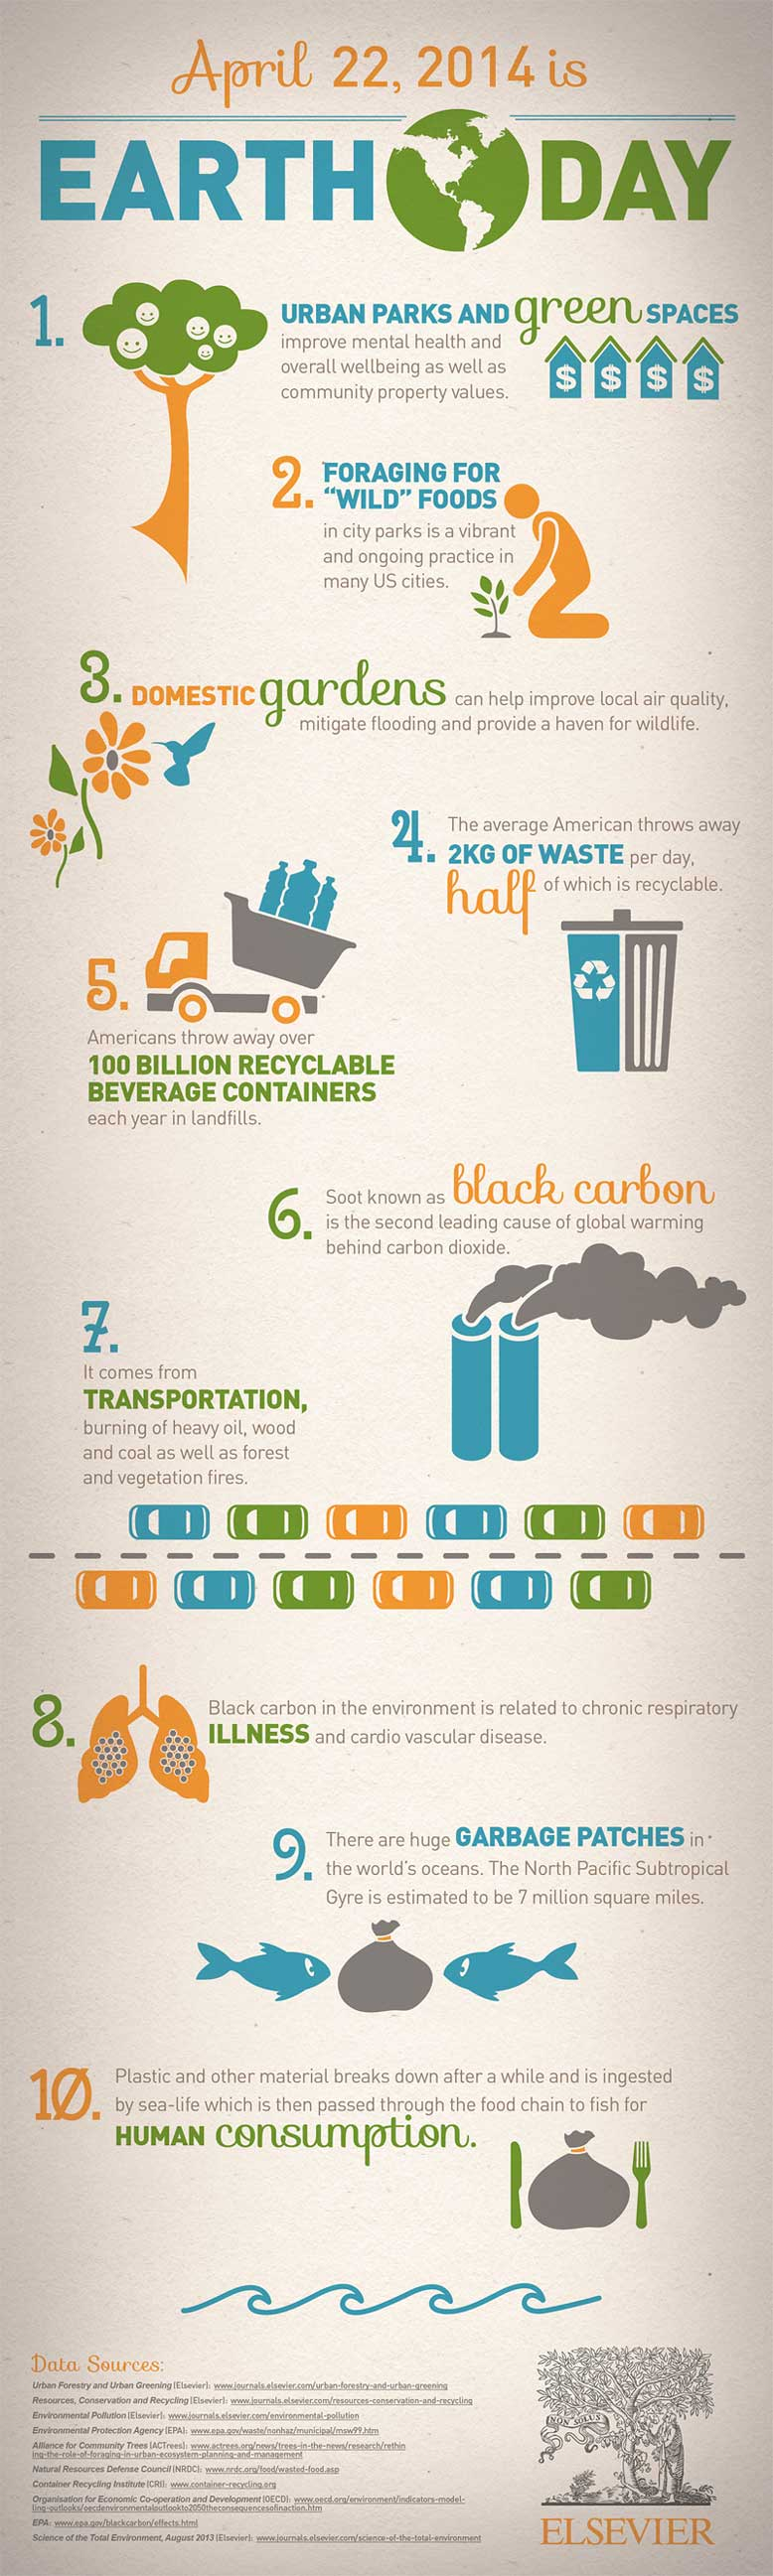 Elsevier's Earth Day 2014 infographic